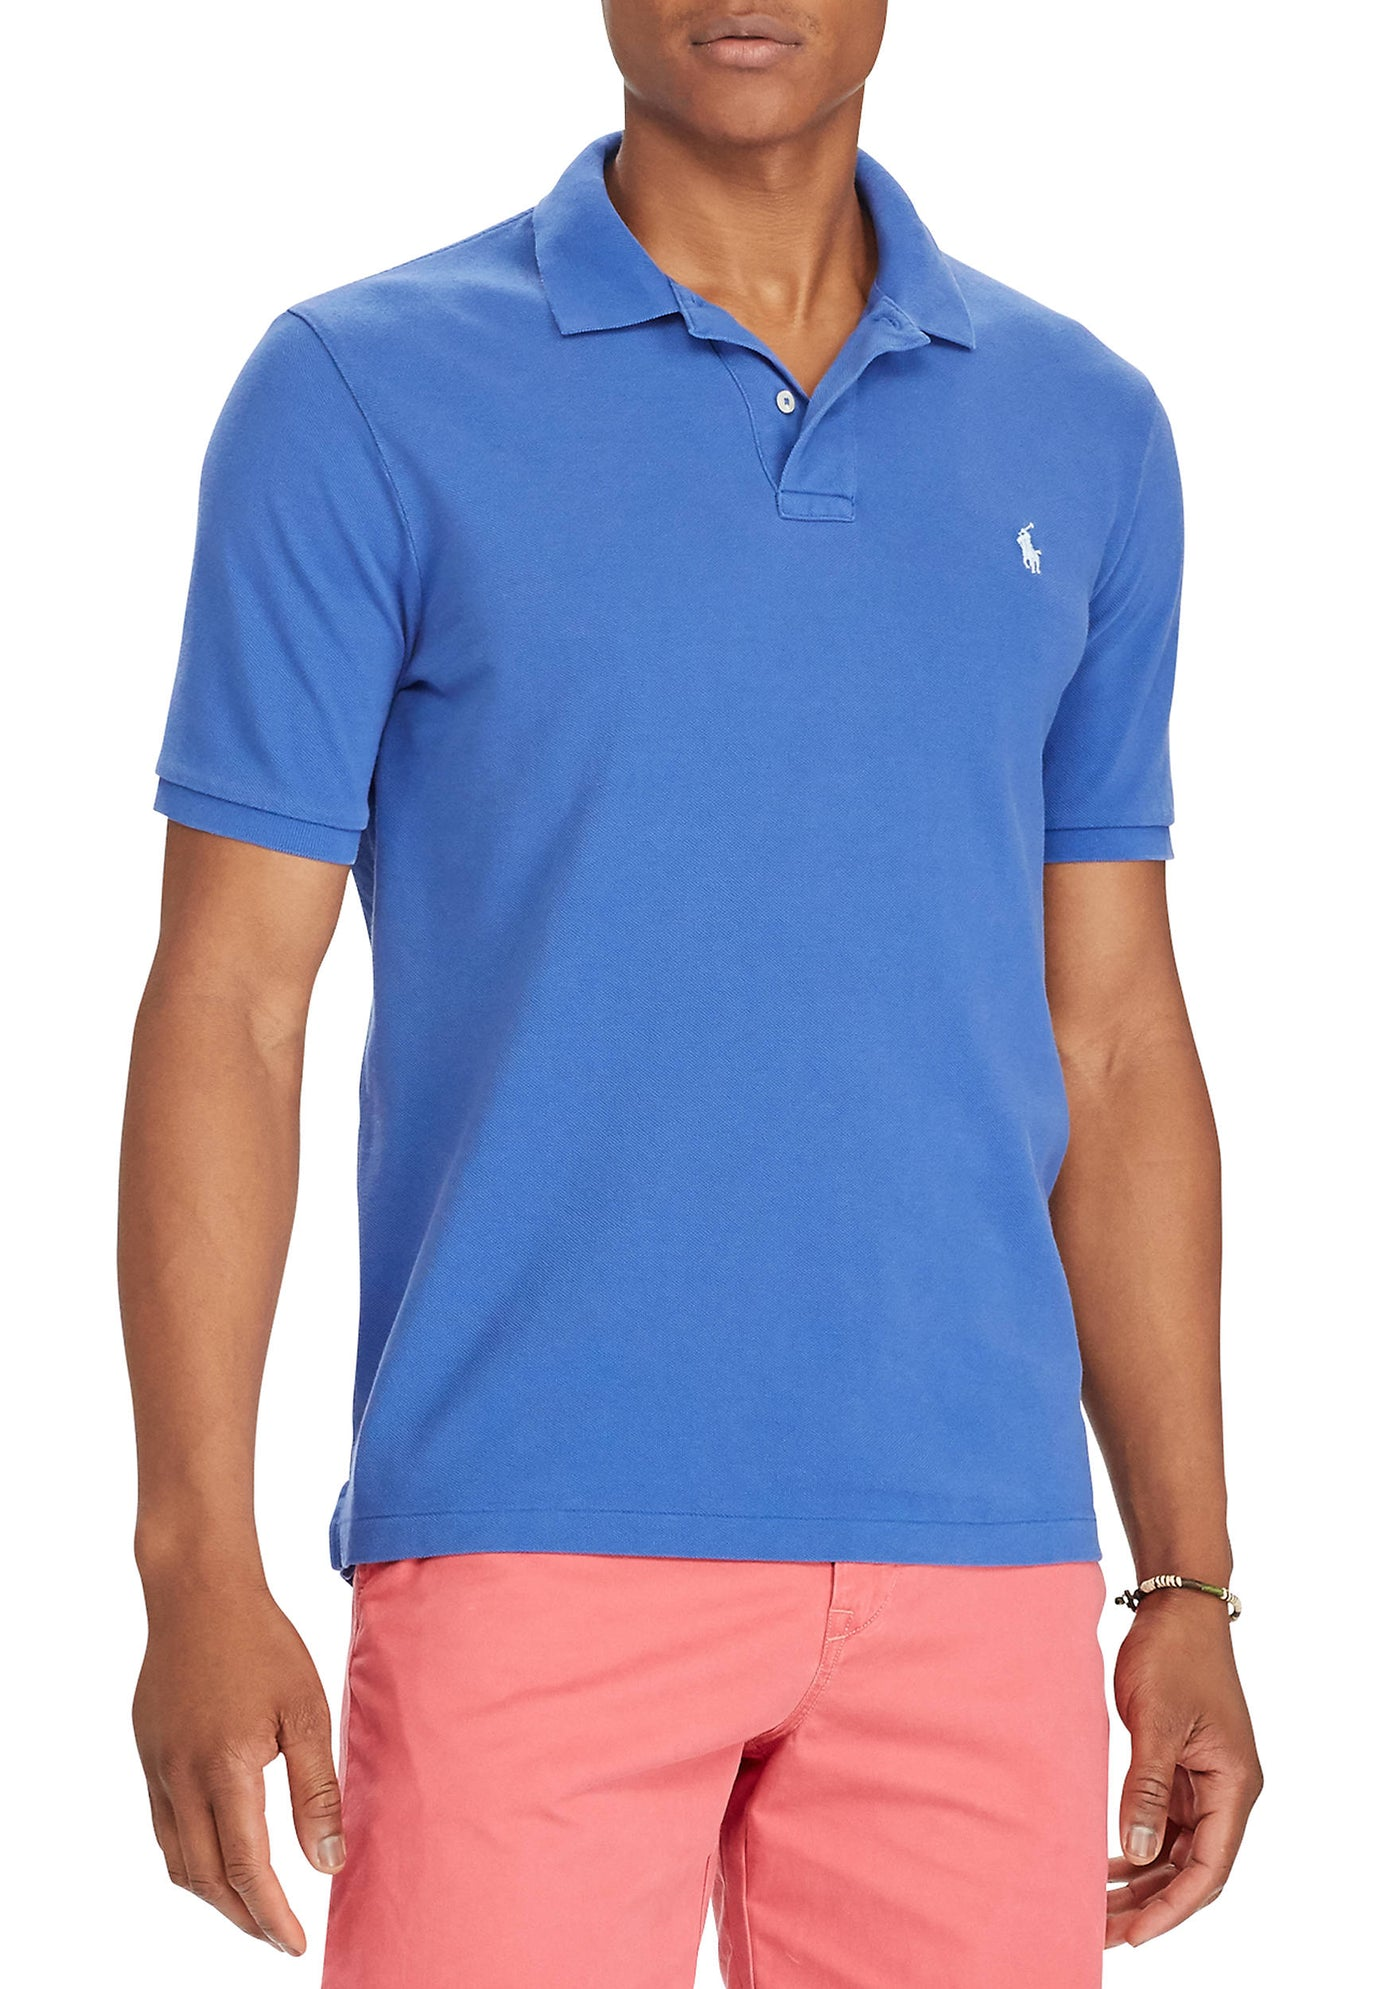 303c0c7e35d RALPH LAUREN Custom Slim Fit Mesh Polo Shirt – BonaChase